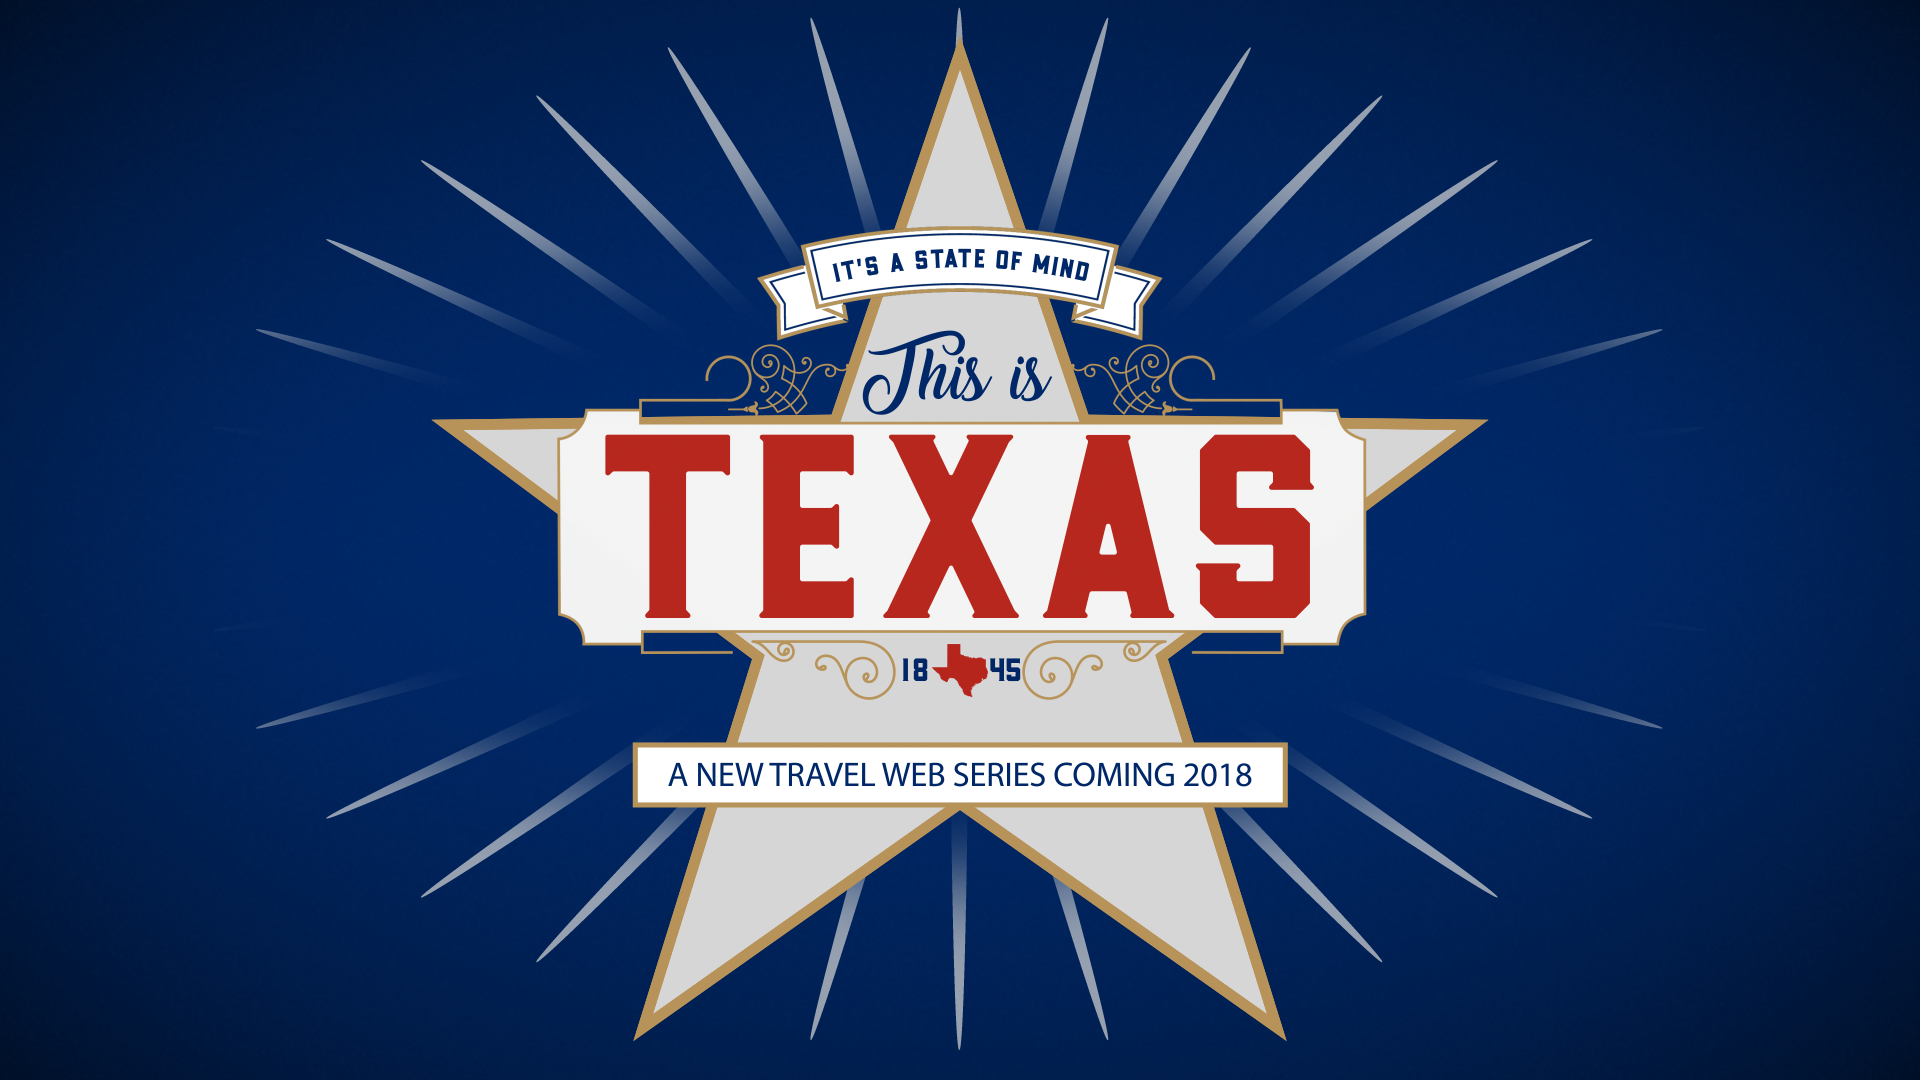 This is Texas web series logo